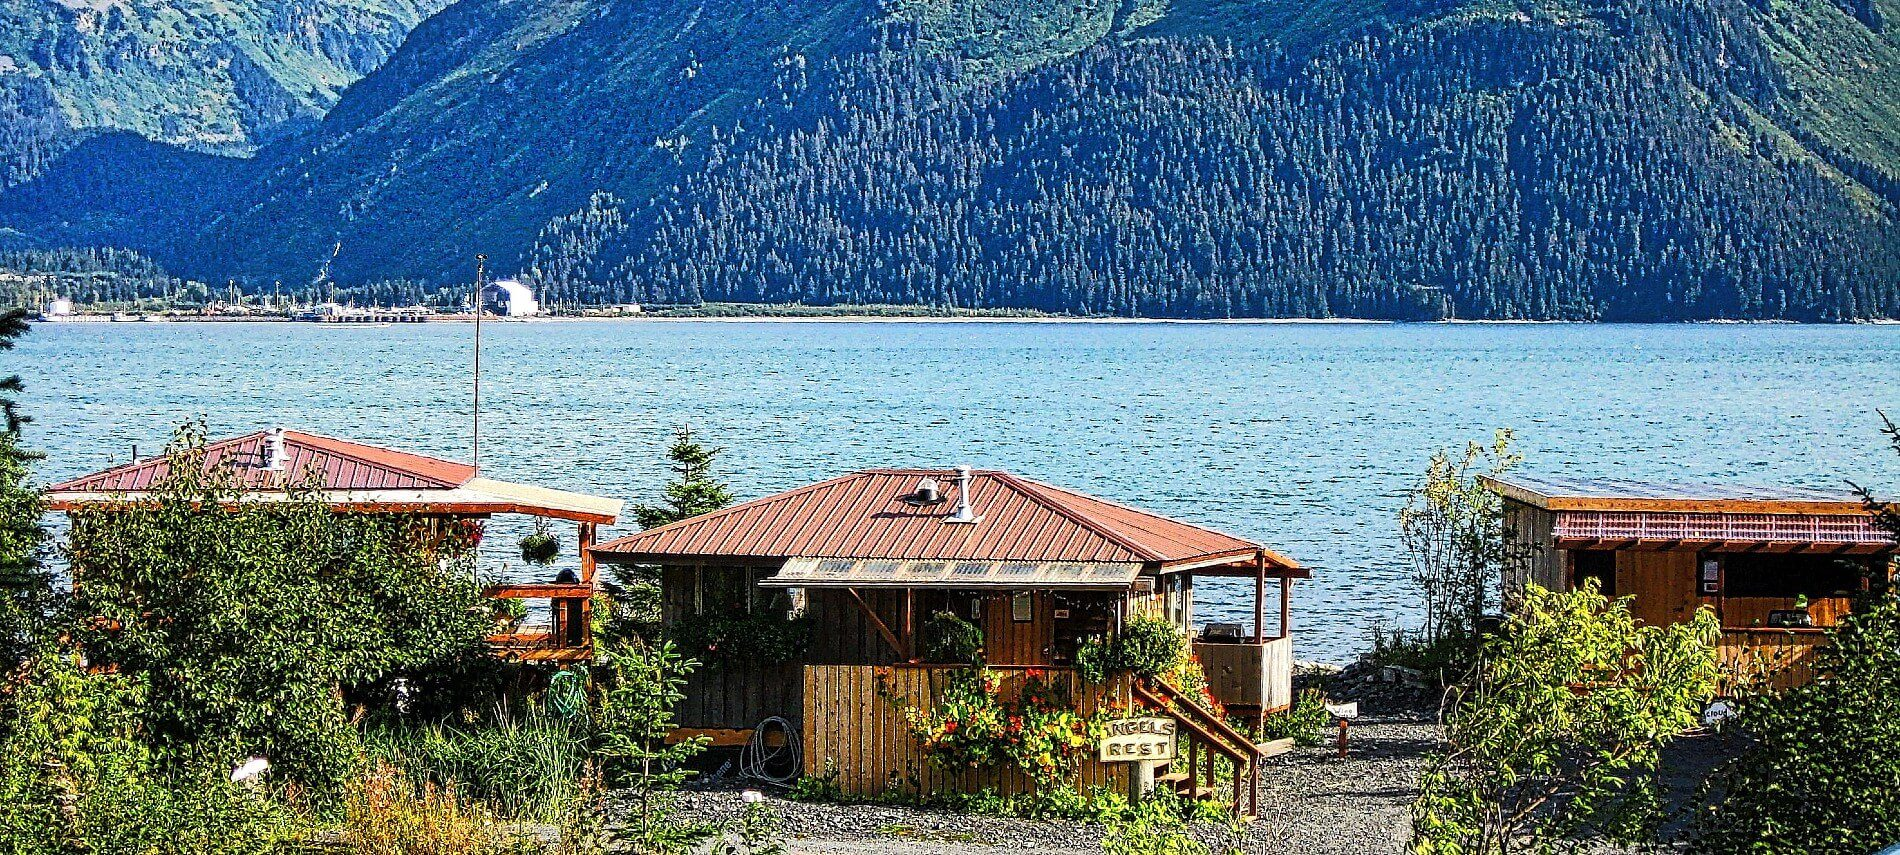 Three small brown cabins next to a large bay with tree covered mountains in the background